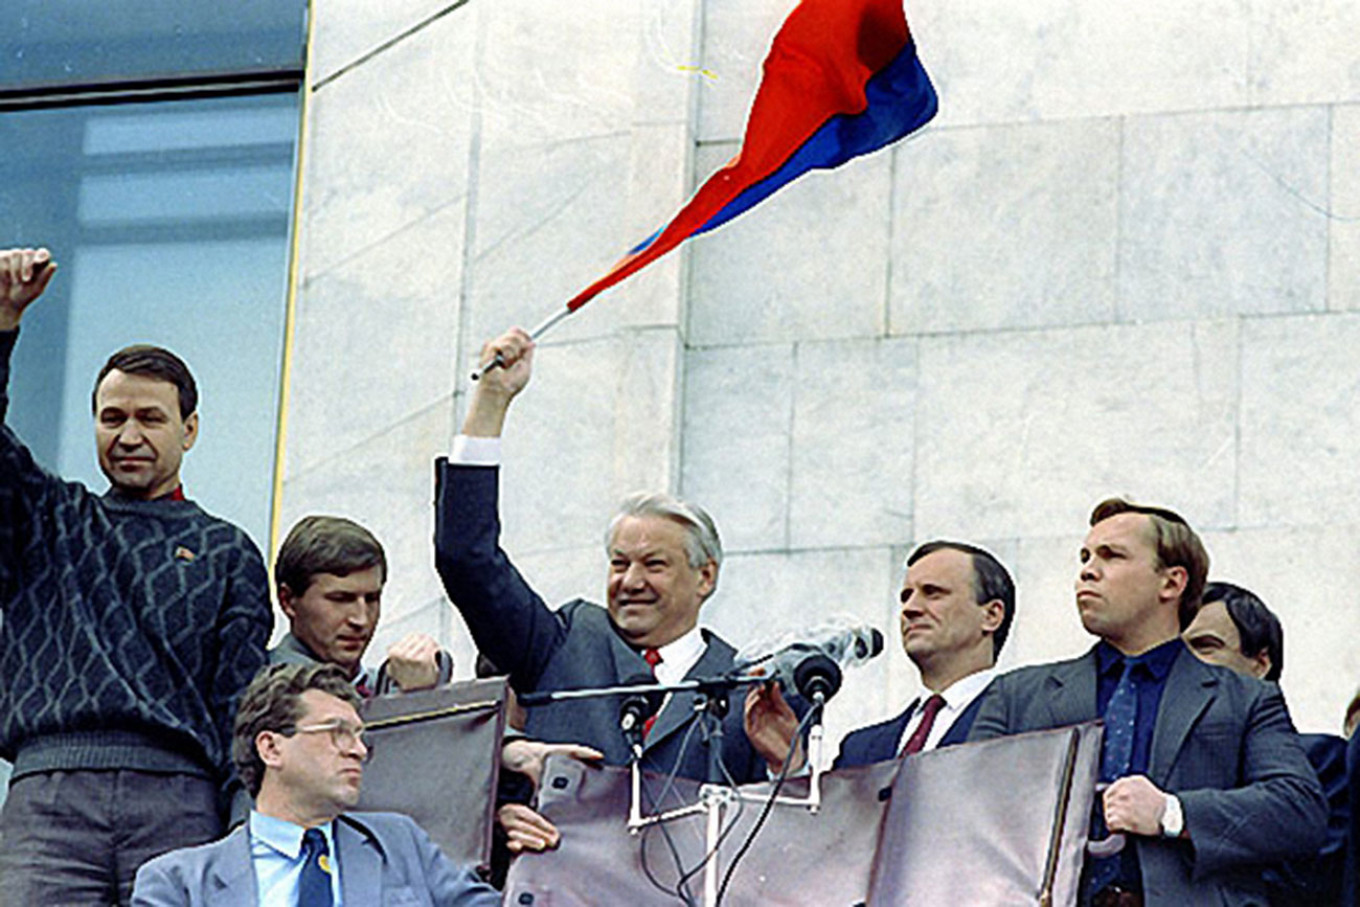 Boris Yeltsin at the White House during the August Coup. kremlin.ru